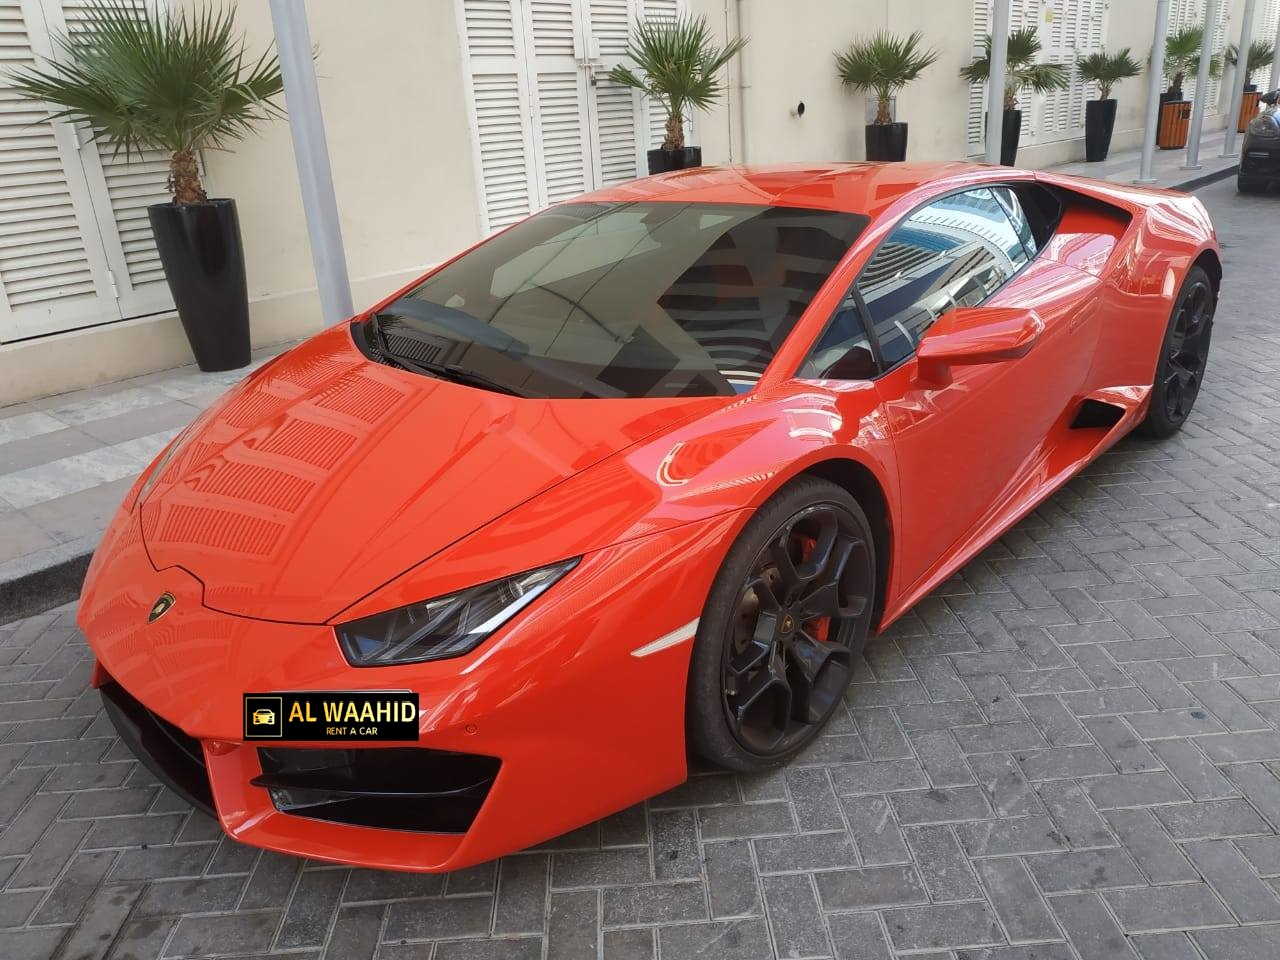 Lamborghini Huracan Rental Dubai Luxury Car Dubai Sports Car Rental